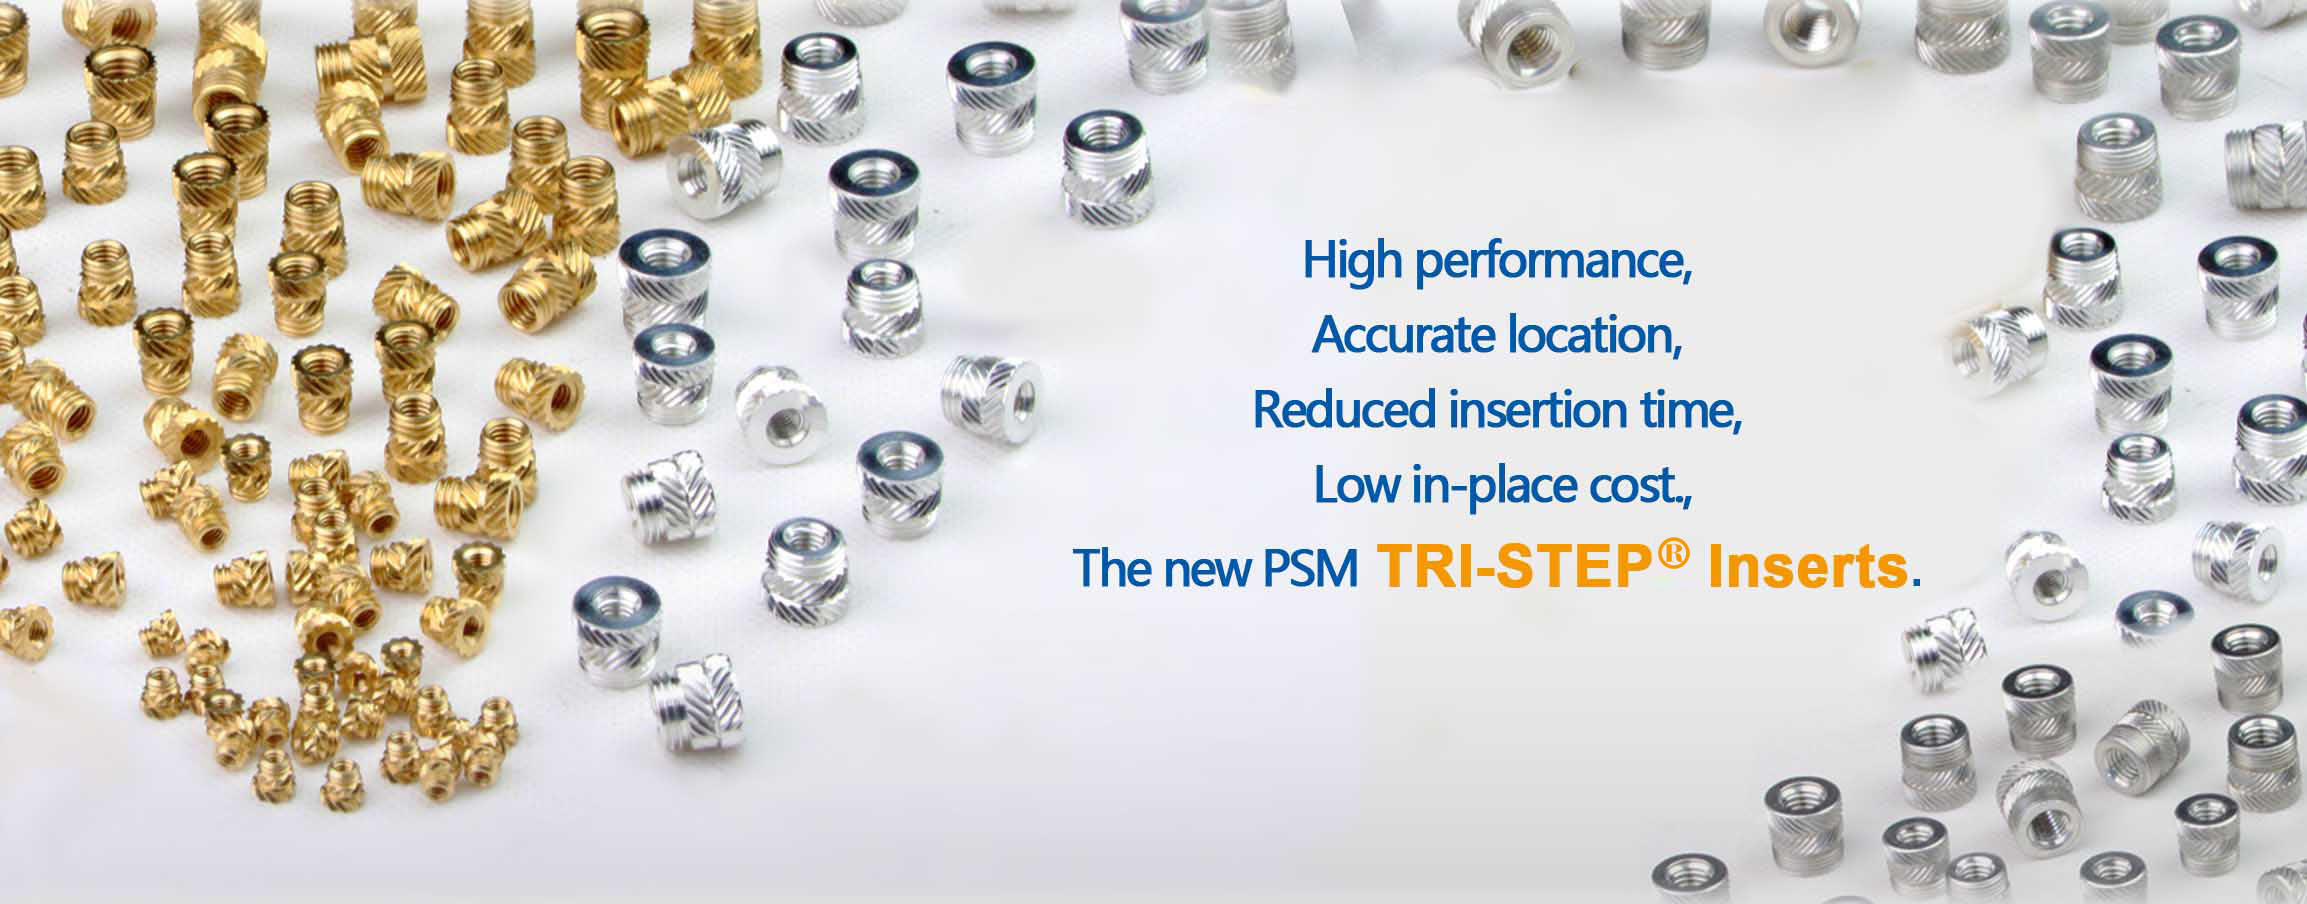 The New PSM Tri-Step Inserts